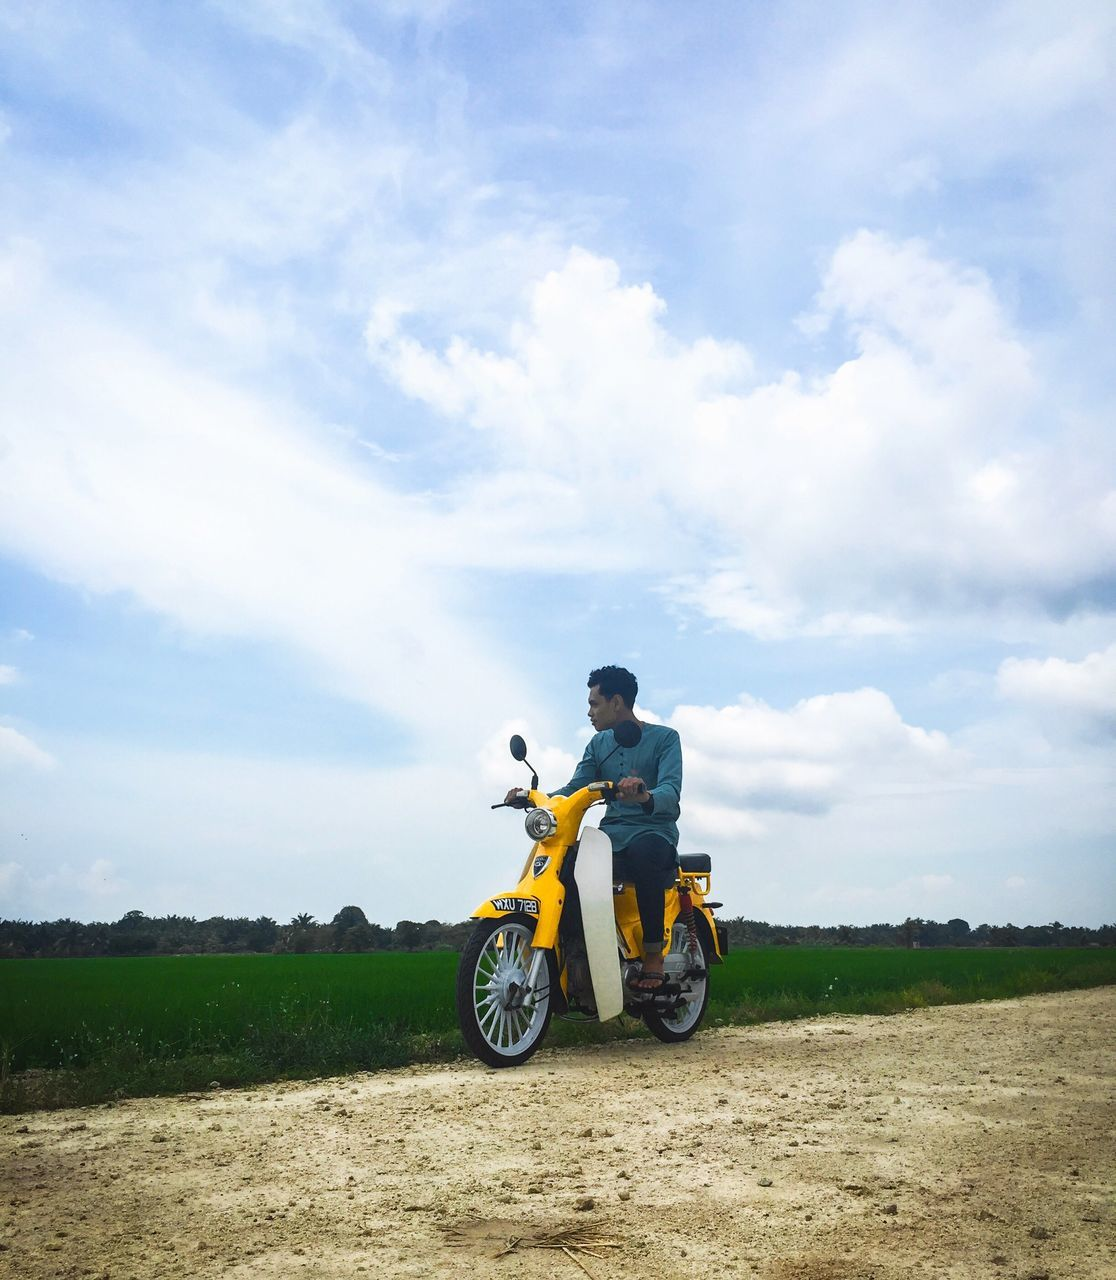 cloud - sky, transportation, field, sky, land vehicle, motorcycle, one person, mode of transport, day, men, real people, riding, landscape, outdoors, lifestyles, full length, motocross, nature, young adult, one man only, adult, people